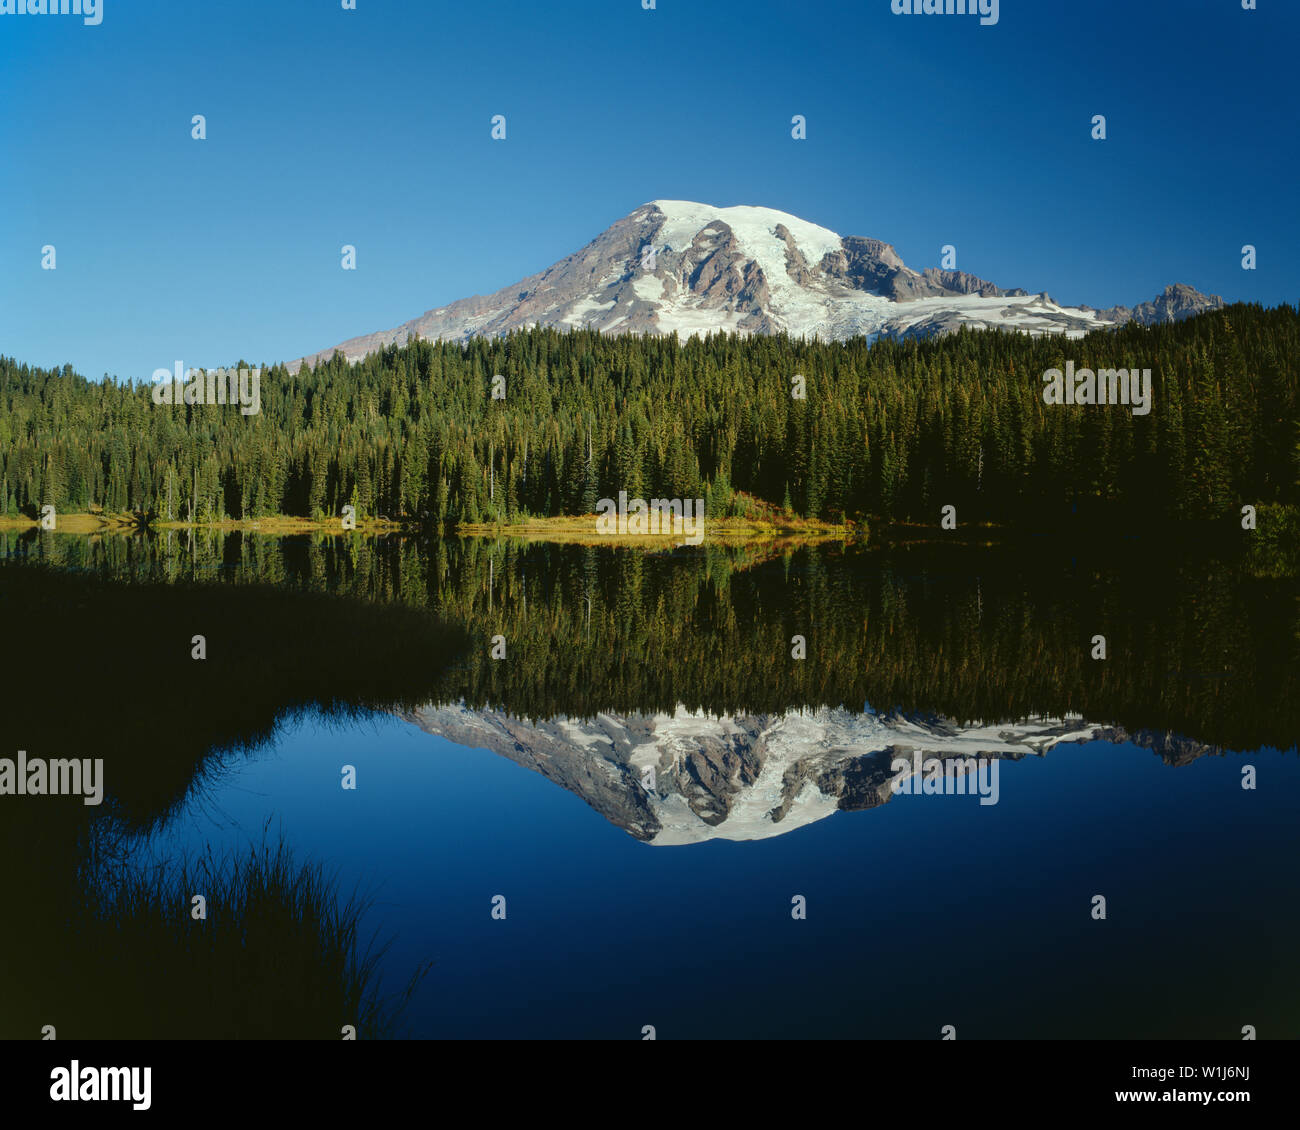 USA, Washington, Mt. Rainier National Park, Mount Rainier and fall colored shrubs and grass are mirrored in Reflection Lake. - Stock Image